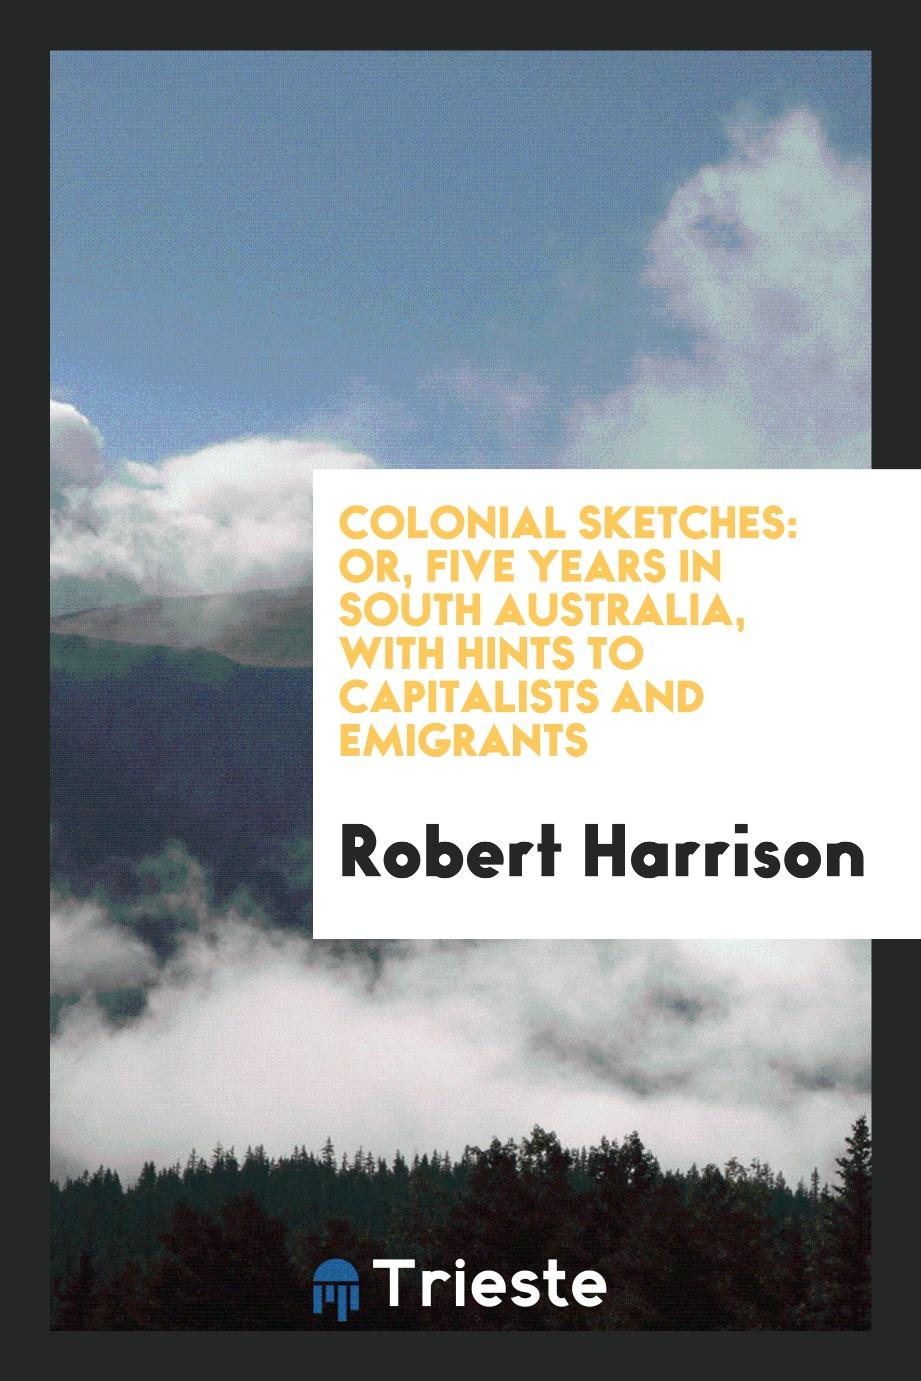 Colonial Sketches: Or, Five Years in South Australia, with Hints to Capitalists and Emigrants